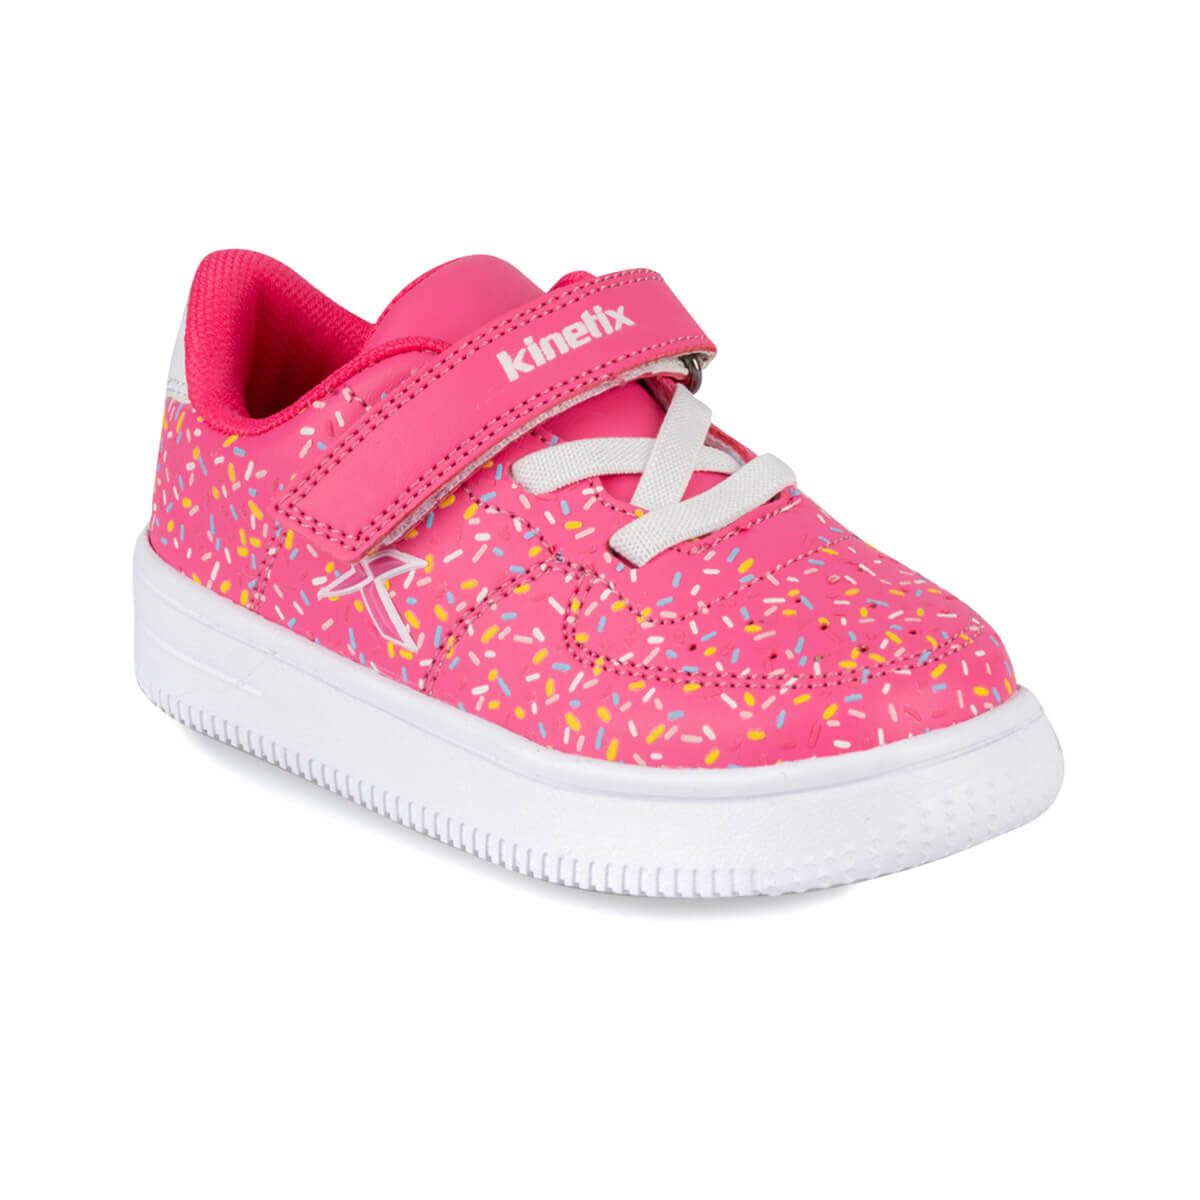 FLO KALEN PRINT 9PR Pink Female Child Sneaker Shoes KINETIX